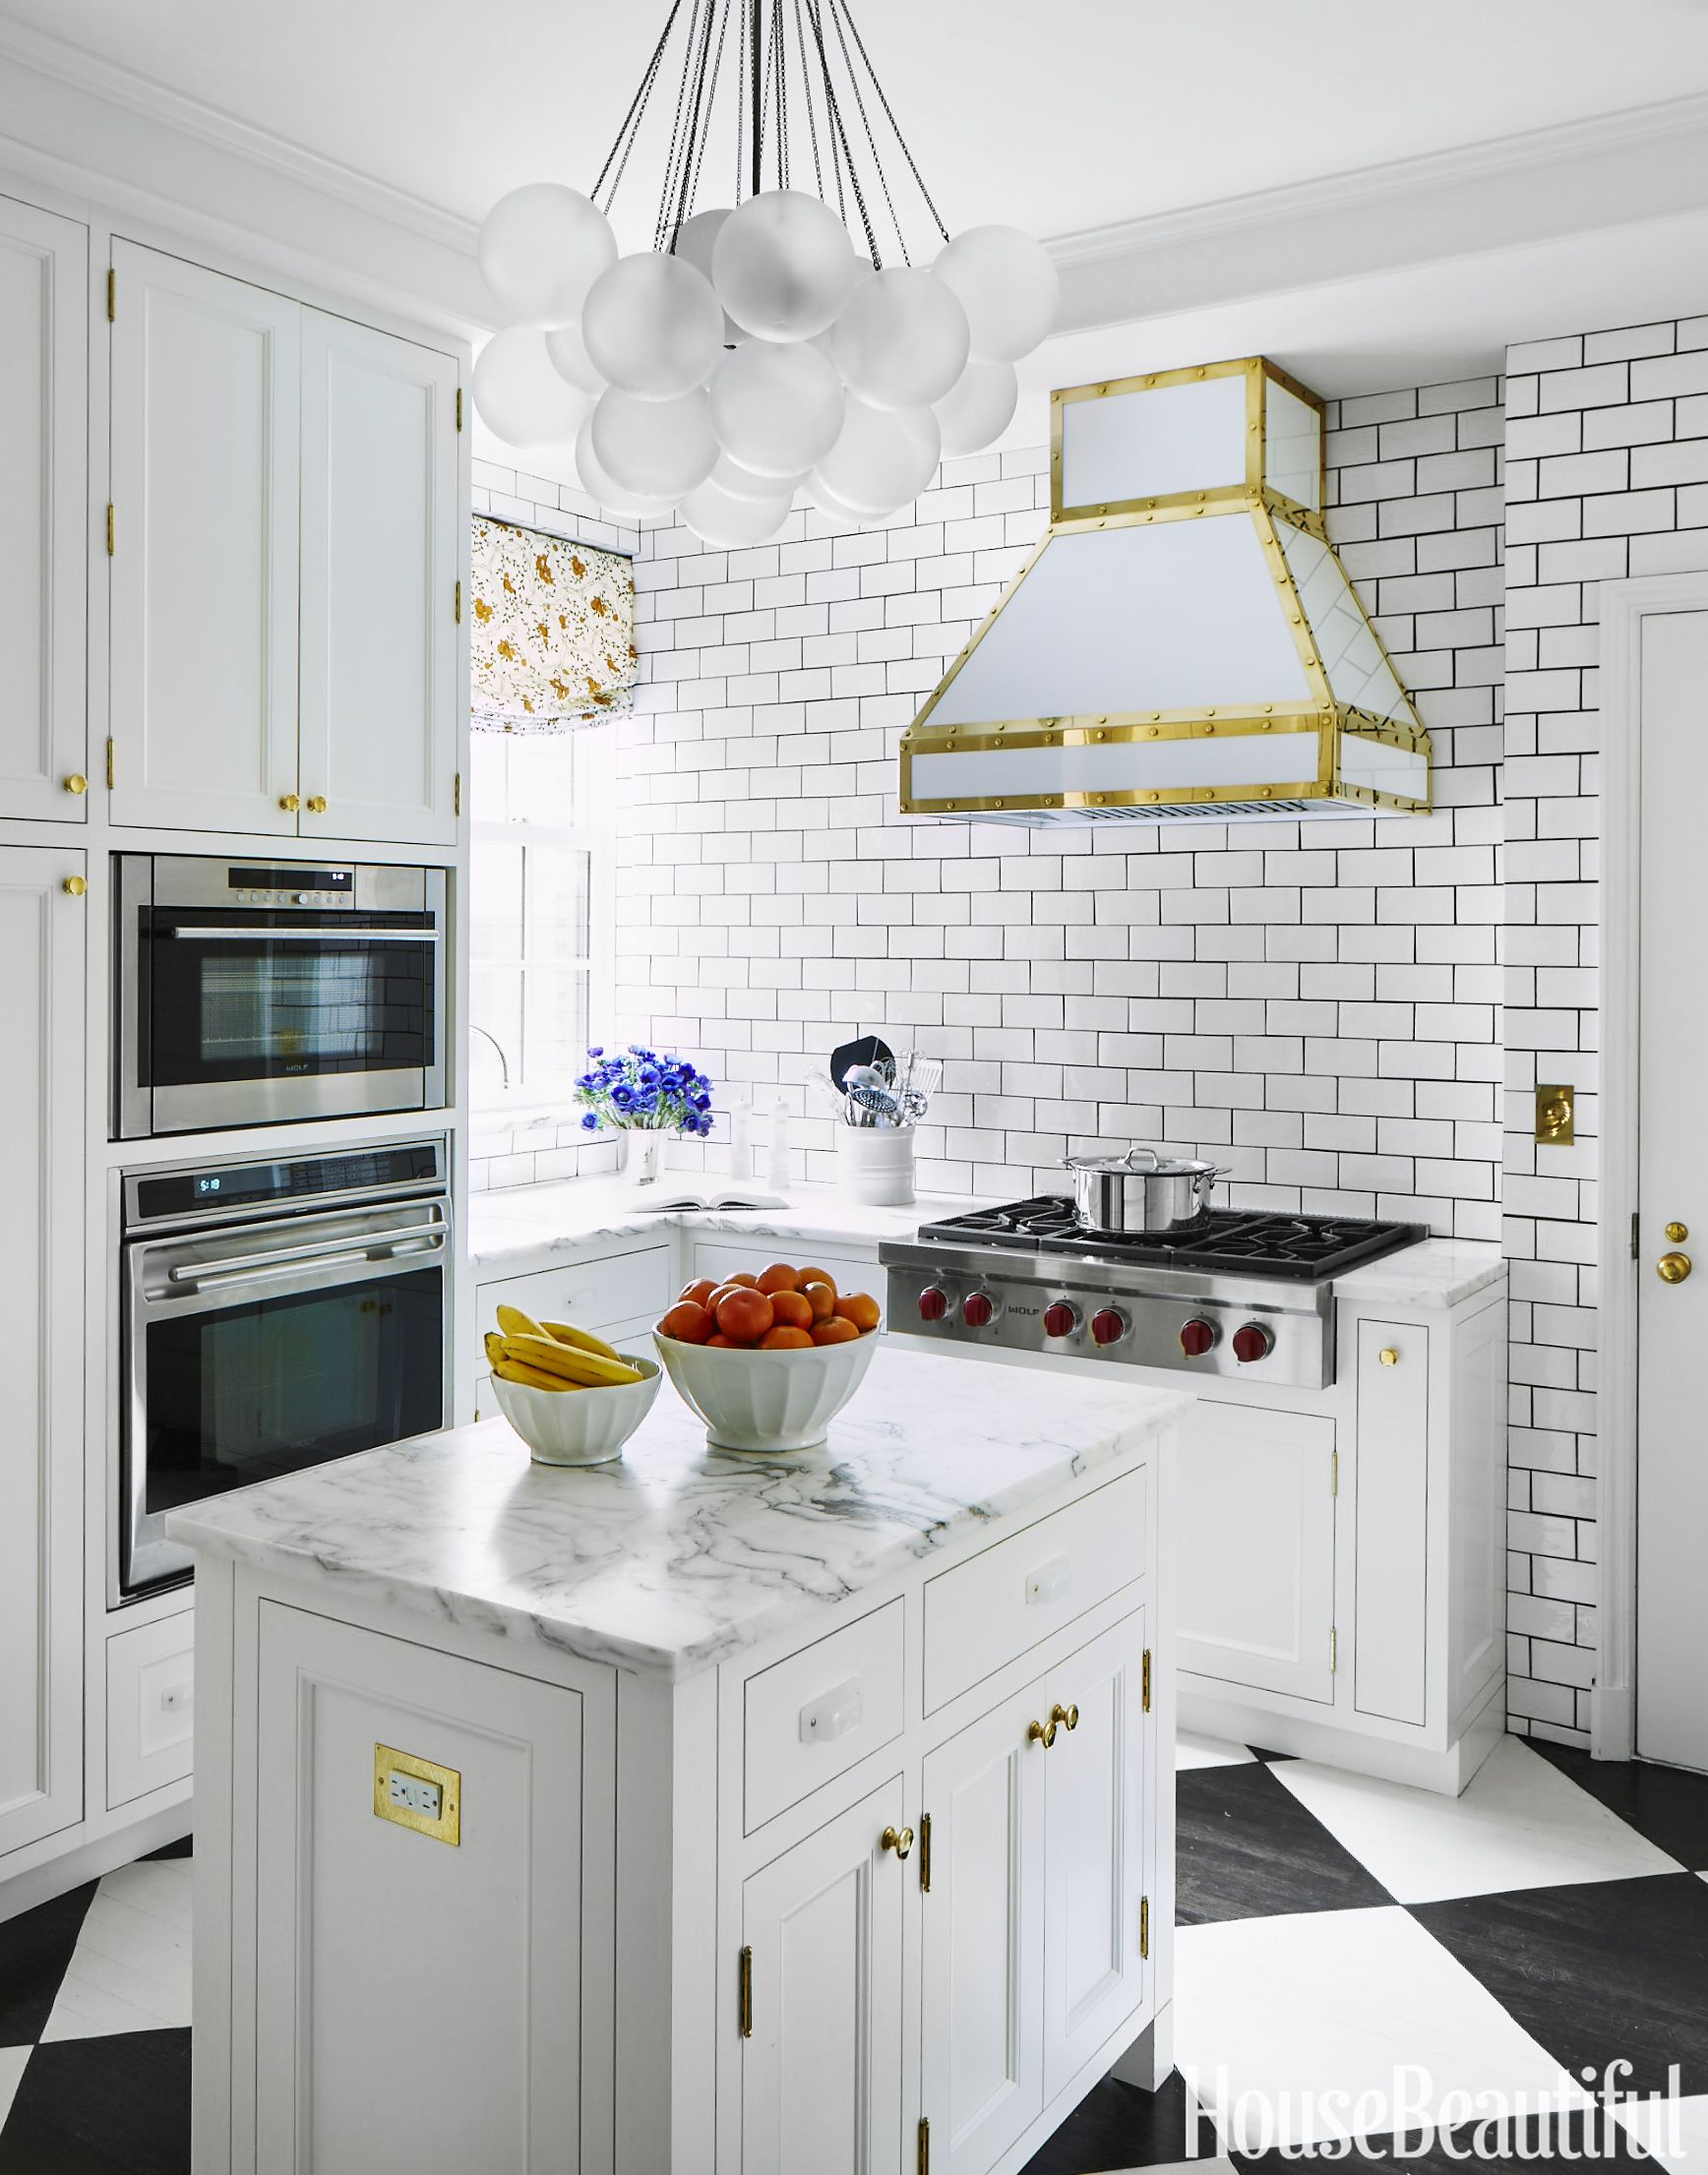 Small Kitchen Ideas That Maximize Style and Efficiency